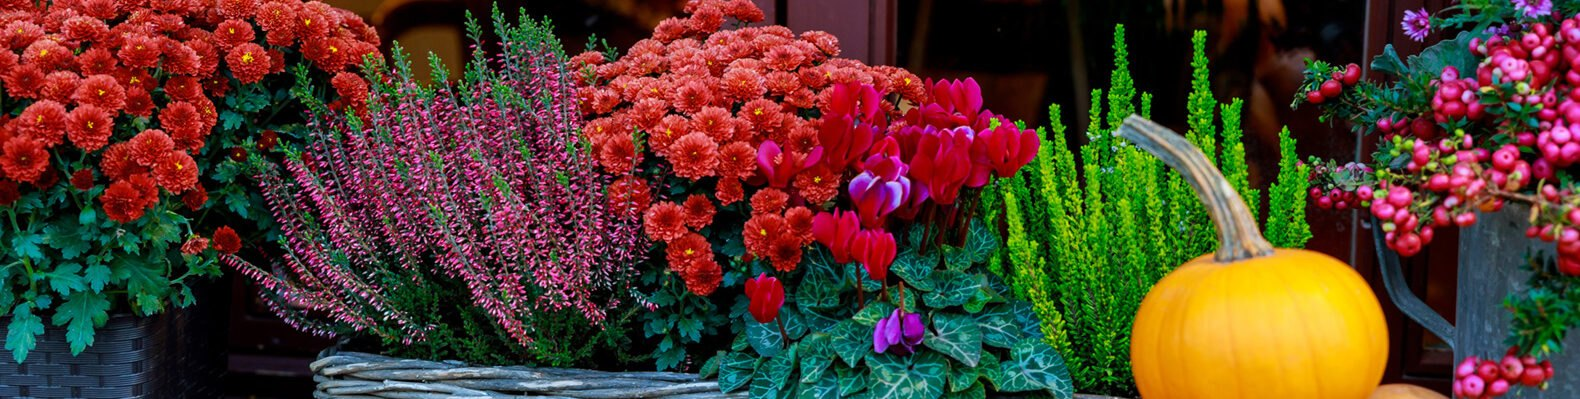 Pumpkin and colorful flowers in baskets